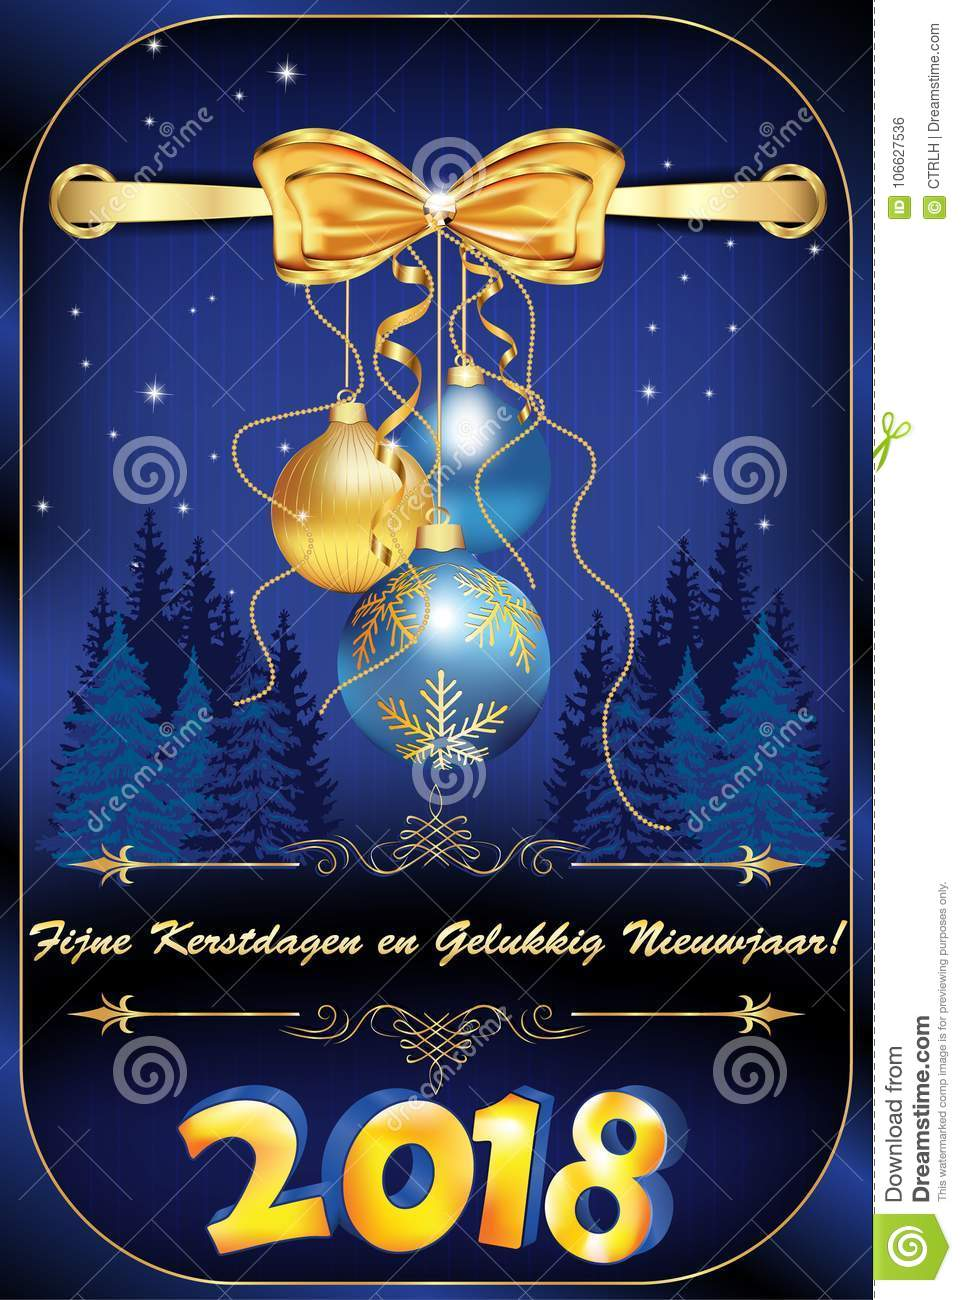 corporate greeting card for the new year celebration with message in dutch